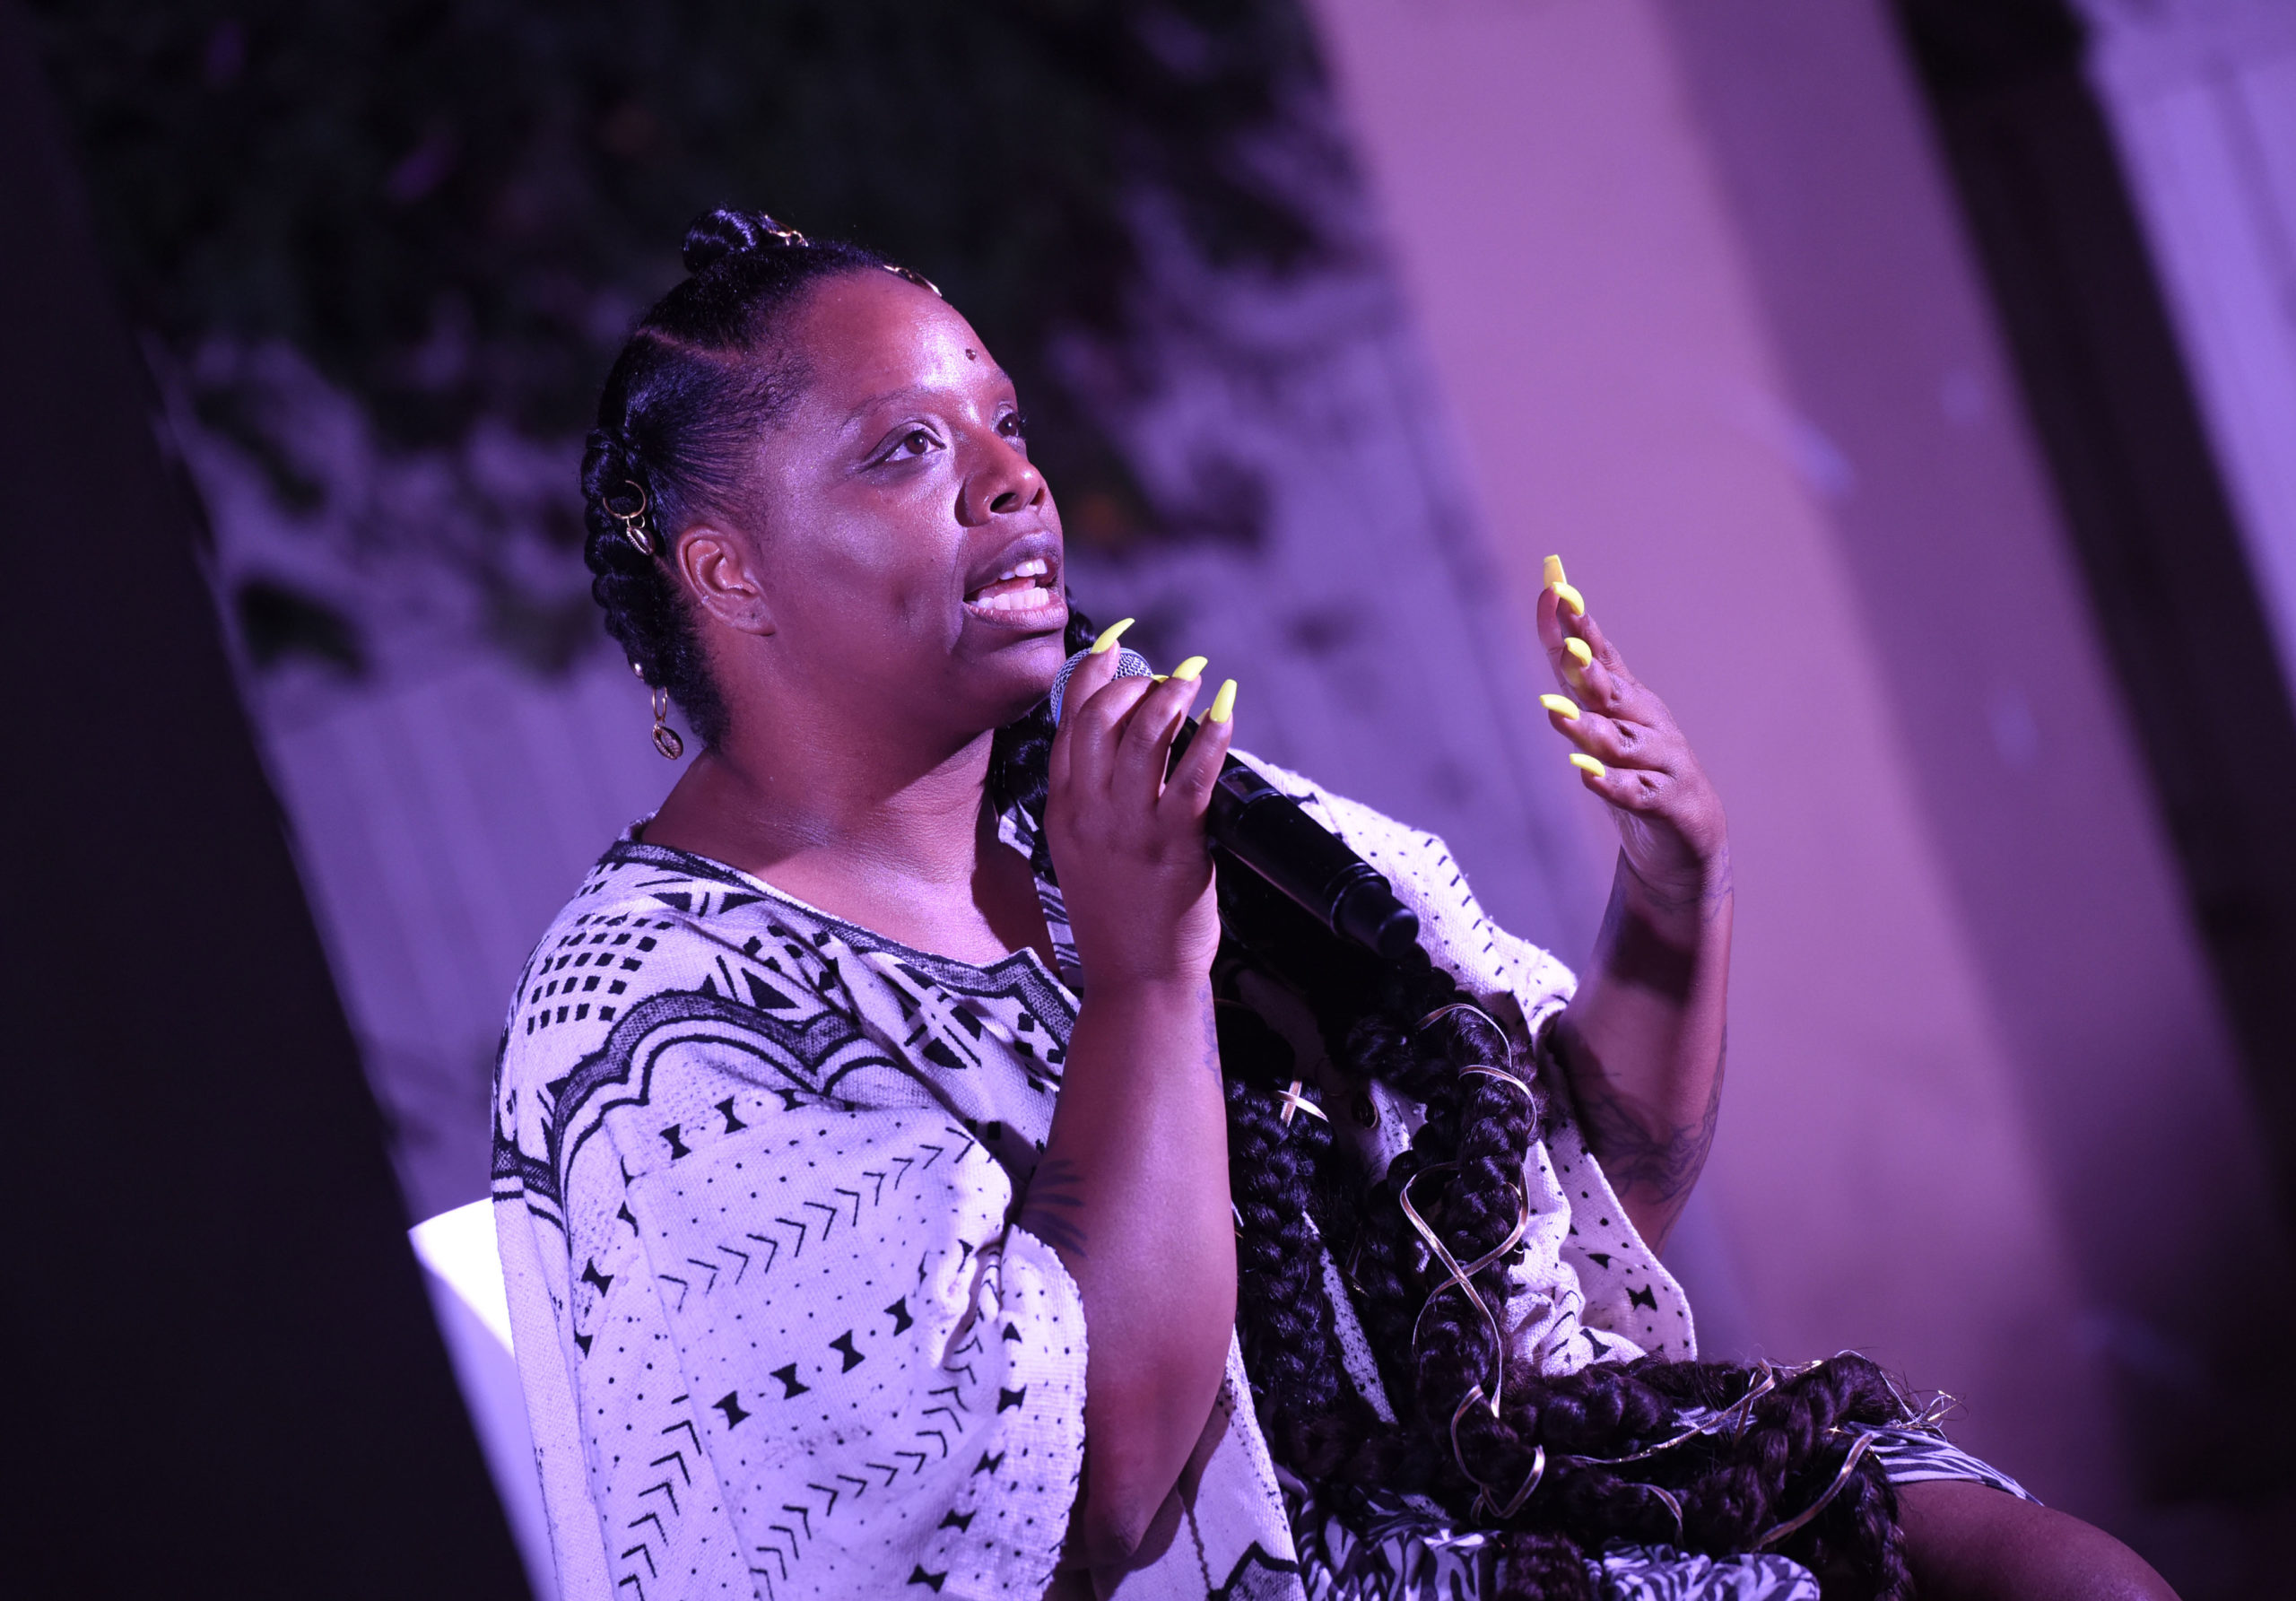 Black Lives Matter Global Network Foundation co-founder and executive director Patrisse Cullors speaks in 2019 in Los Angeles, California. (Vivien Killilea/Getty Images for Patrisse Cullor)